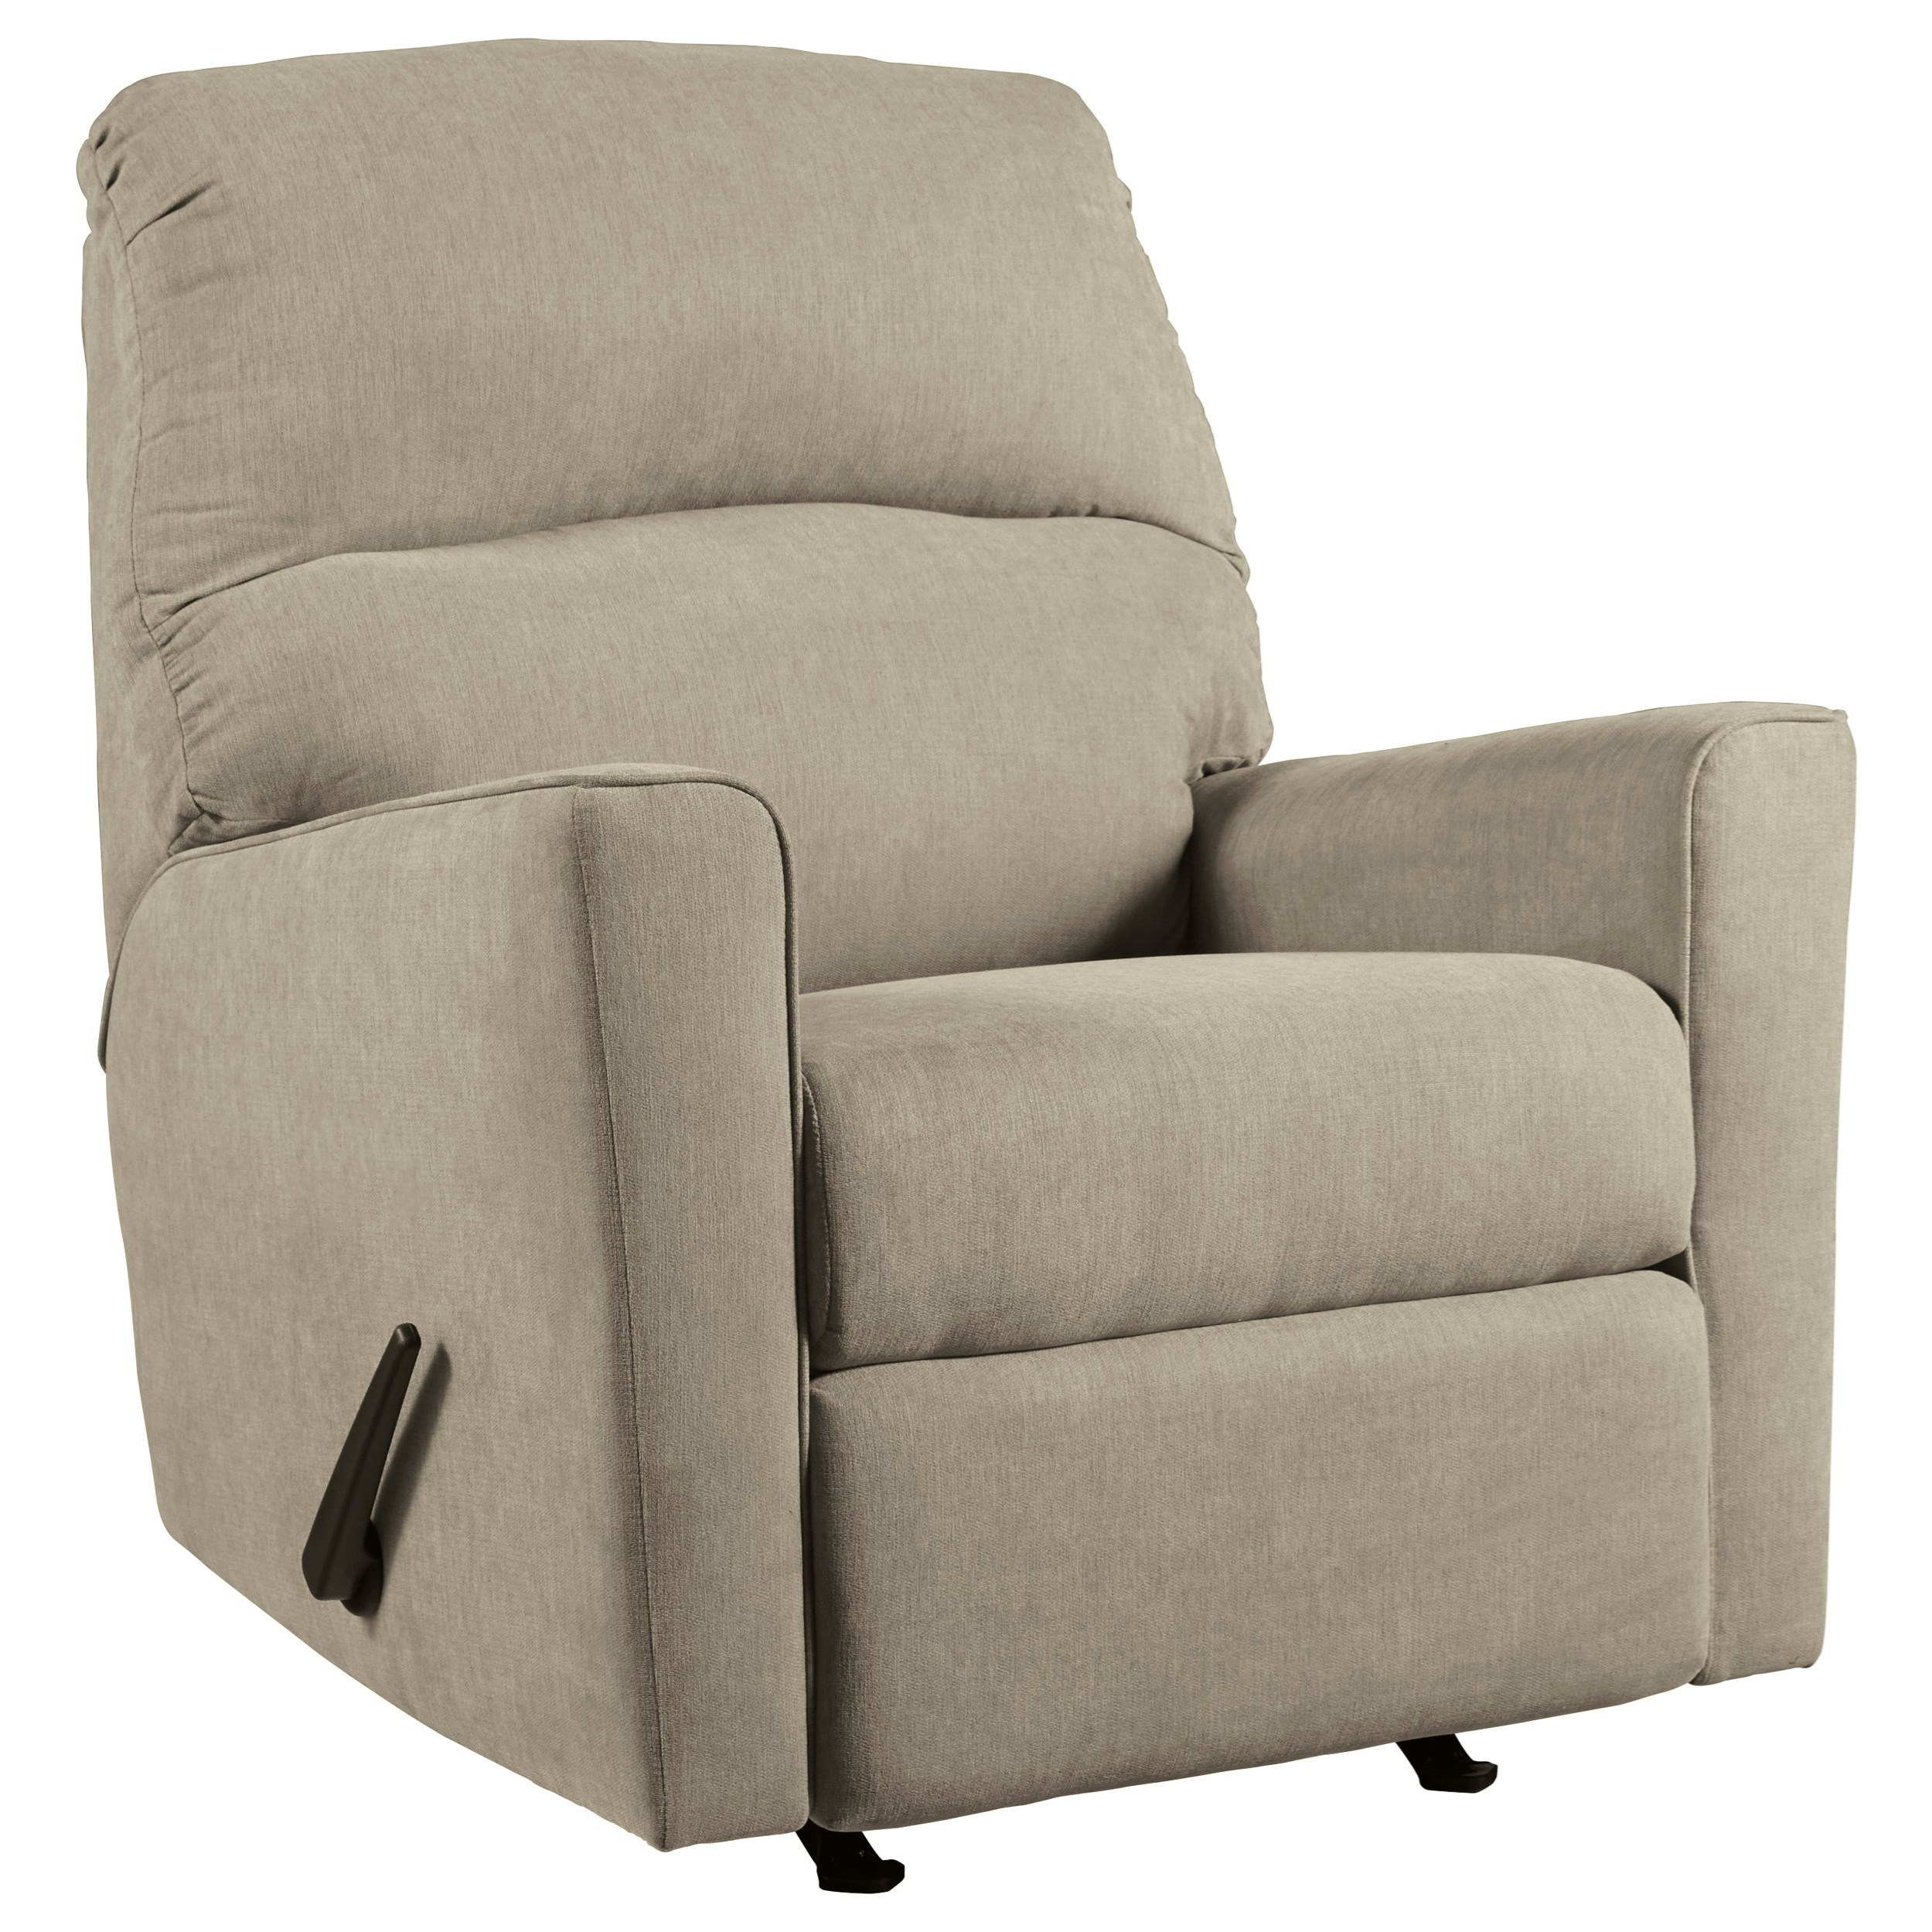 Trendz Corin - Quartz Rocker Recliner - Item Number: 1660025